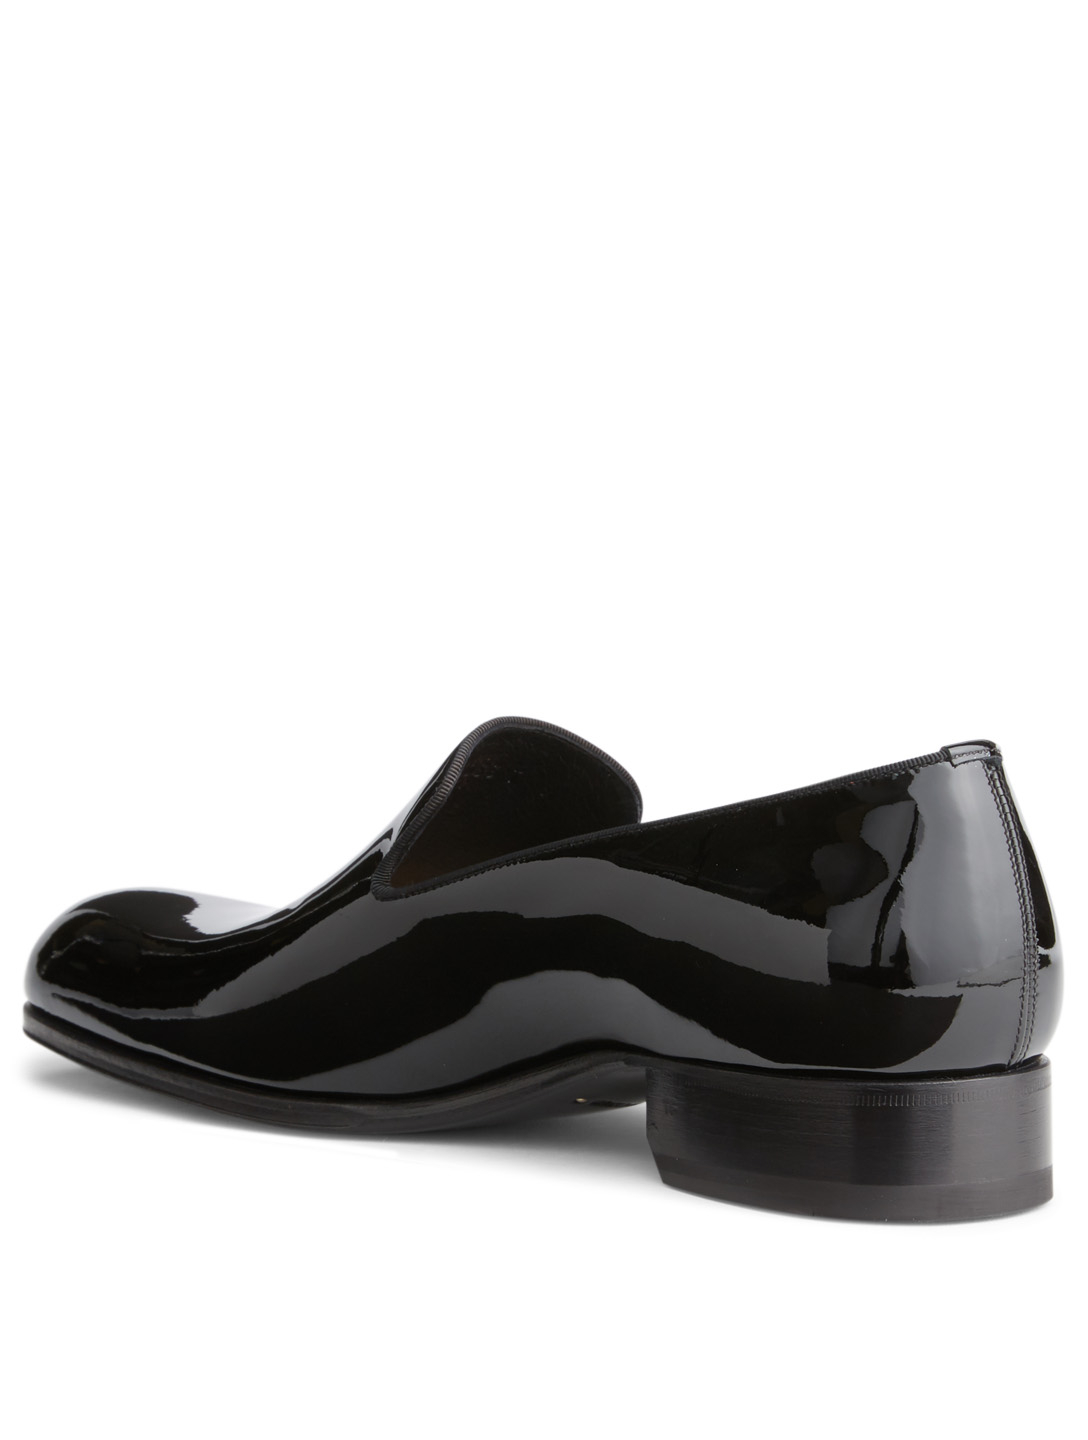 TOM FORD Edgar Patent Leather Evening Loafer Men's Black